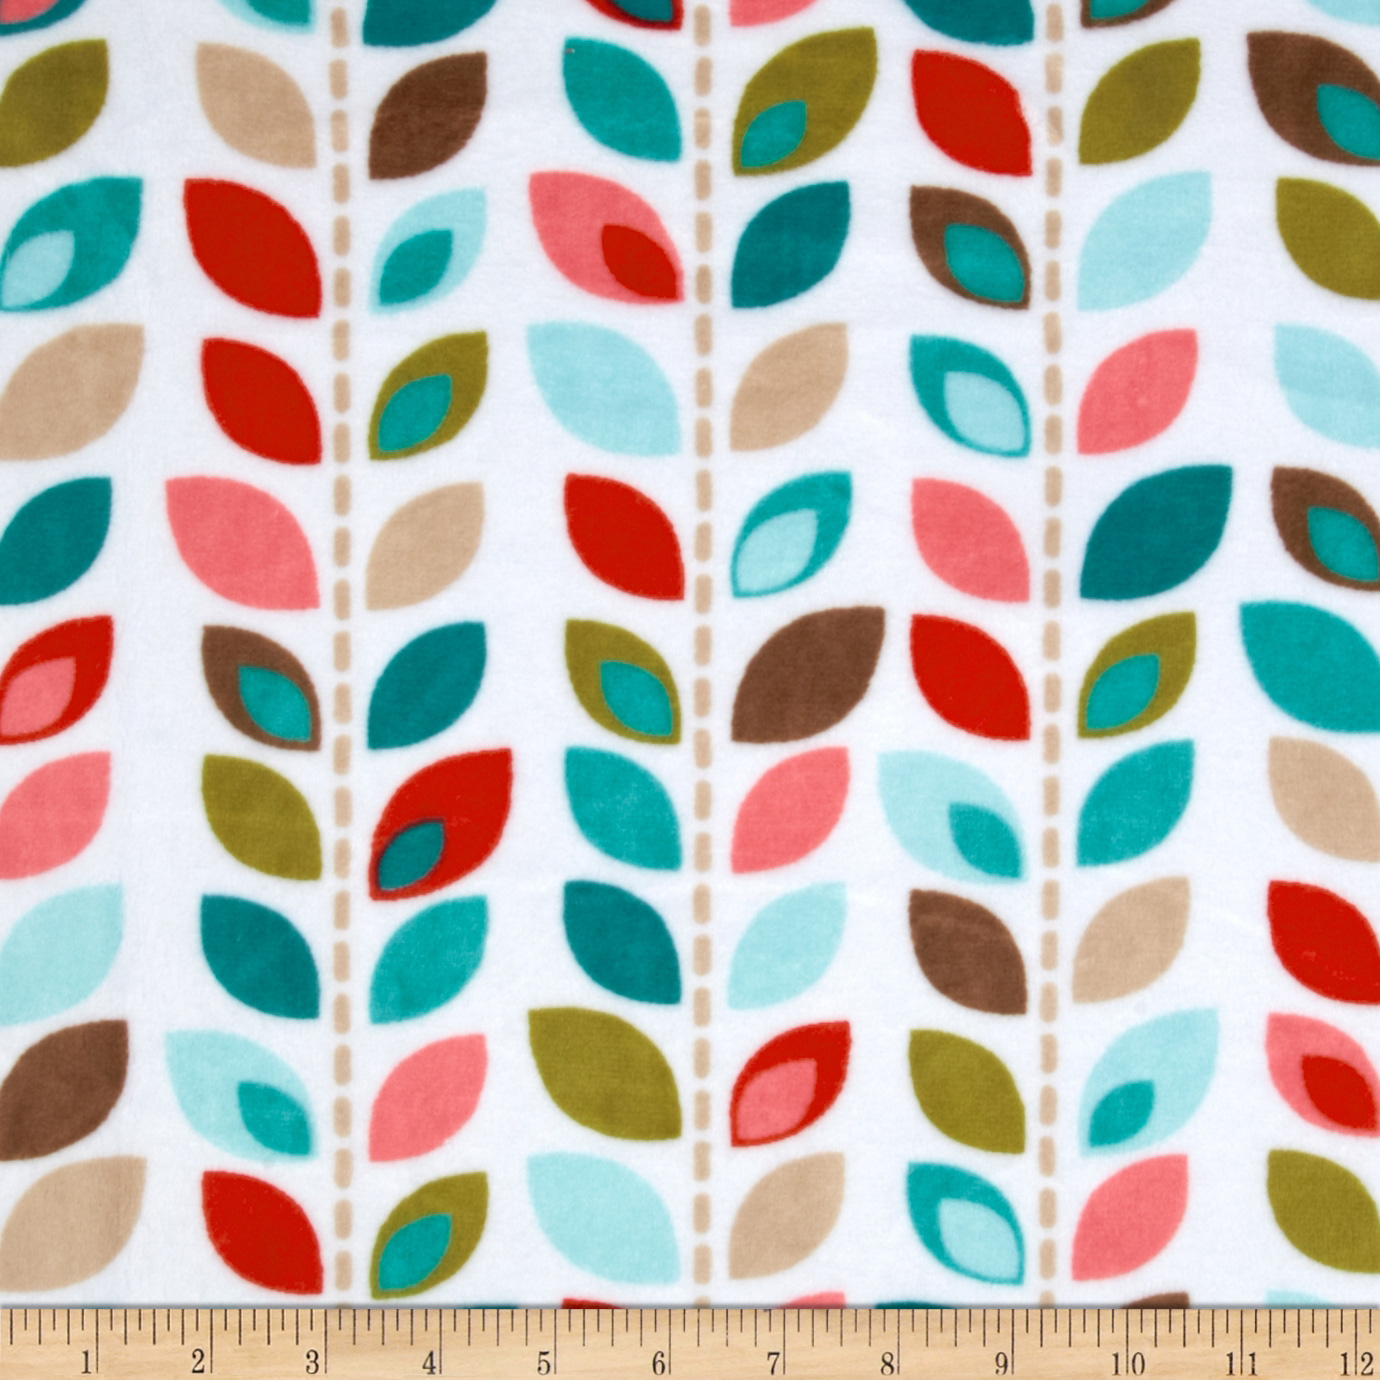 Adorn-it Minky Cuddle Leaf Row Coral Fabric